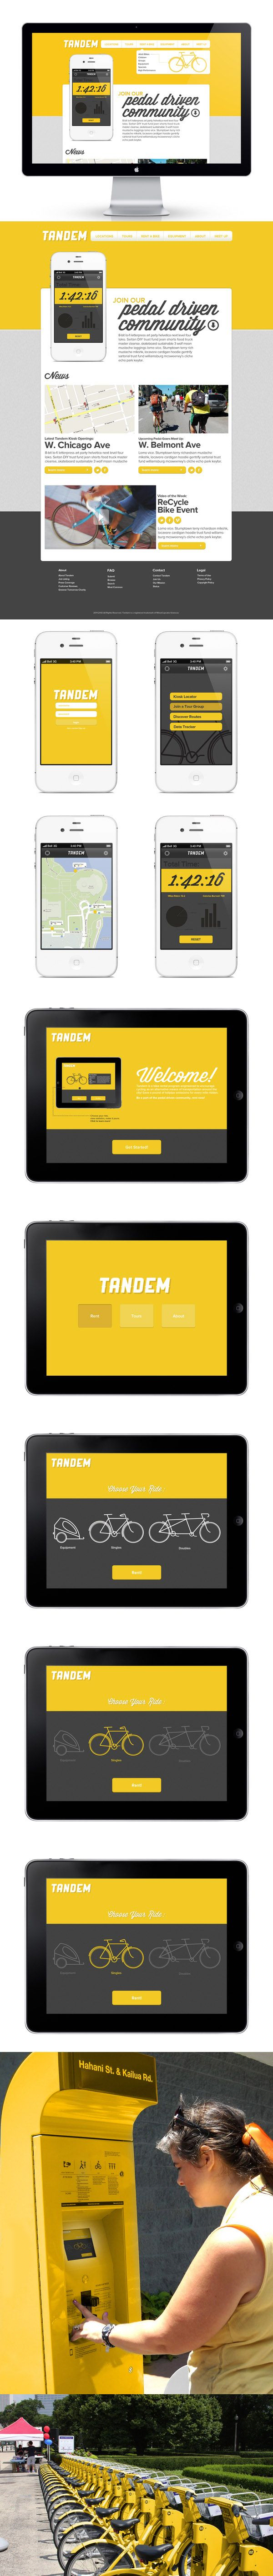 Tandem | A Bike Rental Service by Alex Garey, via Behance *** Rent it, ride it, return it. Save a pound of tailpipe emissions for every mile! Tandem offers an affordable, environmentally sustainable, and convenient form of transportation in the dense urban landscape.